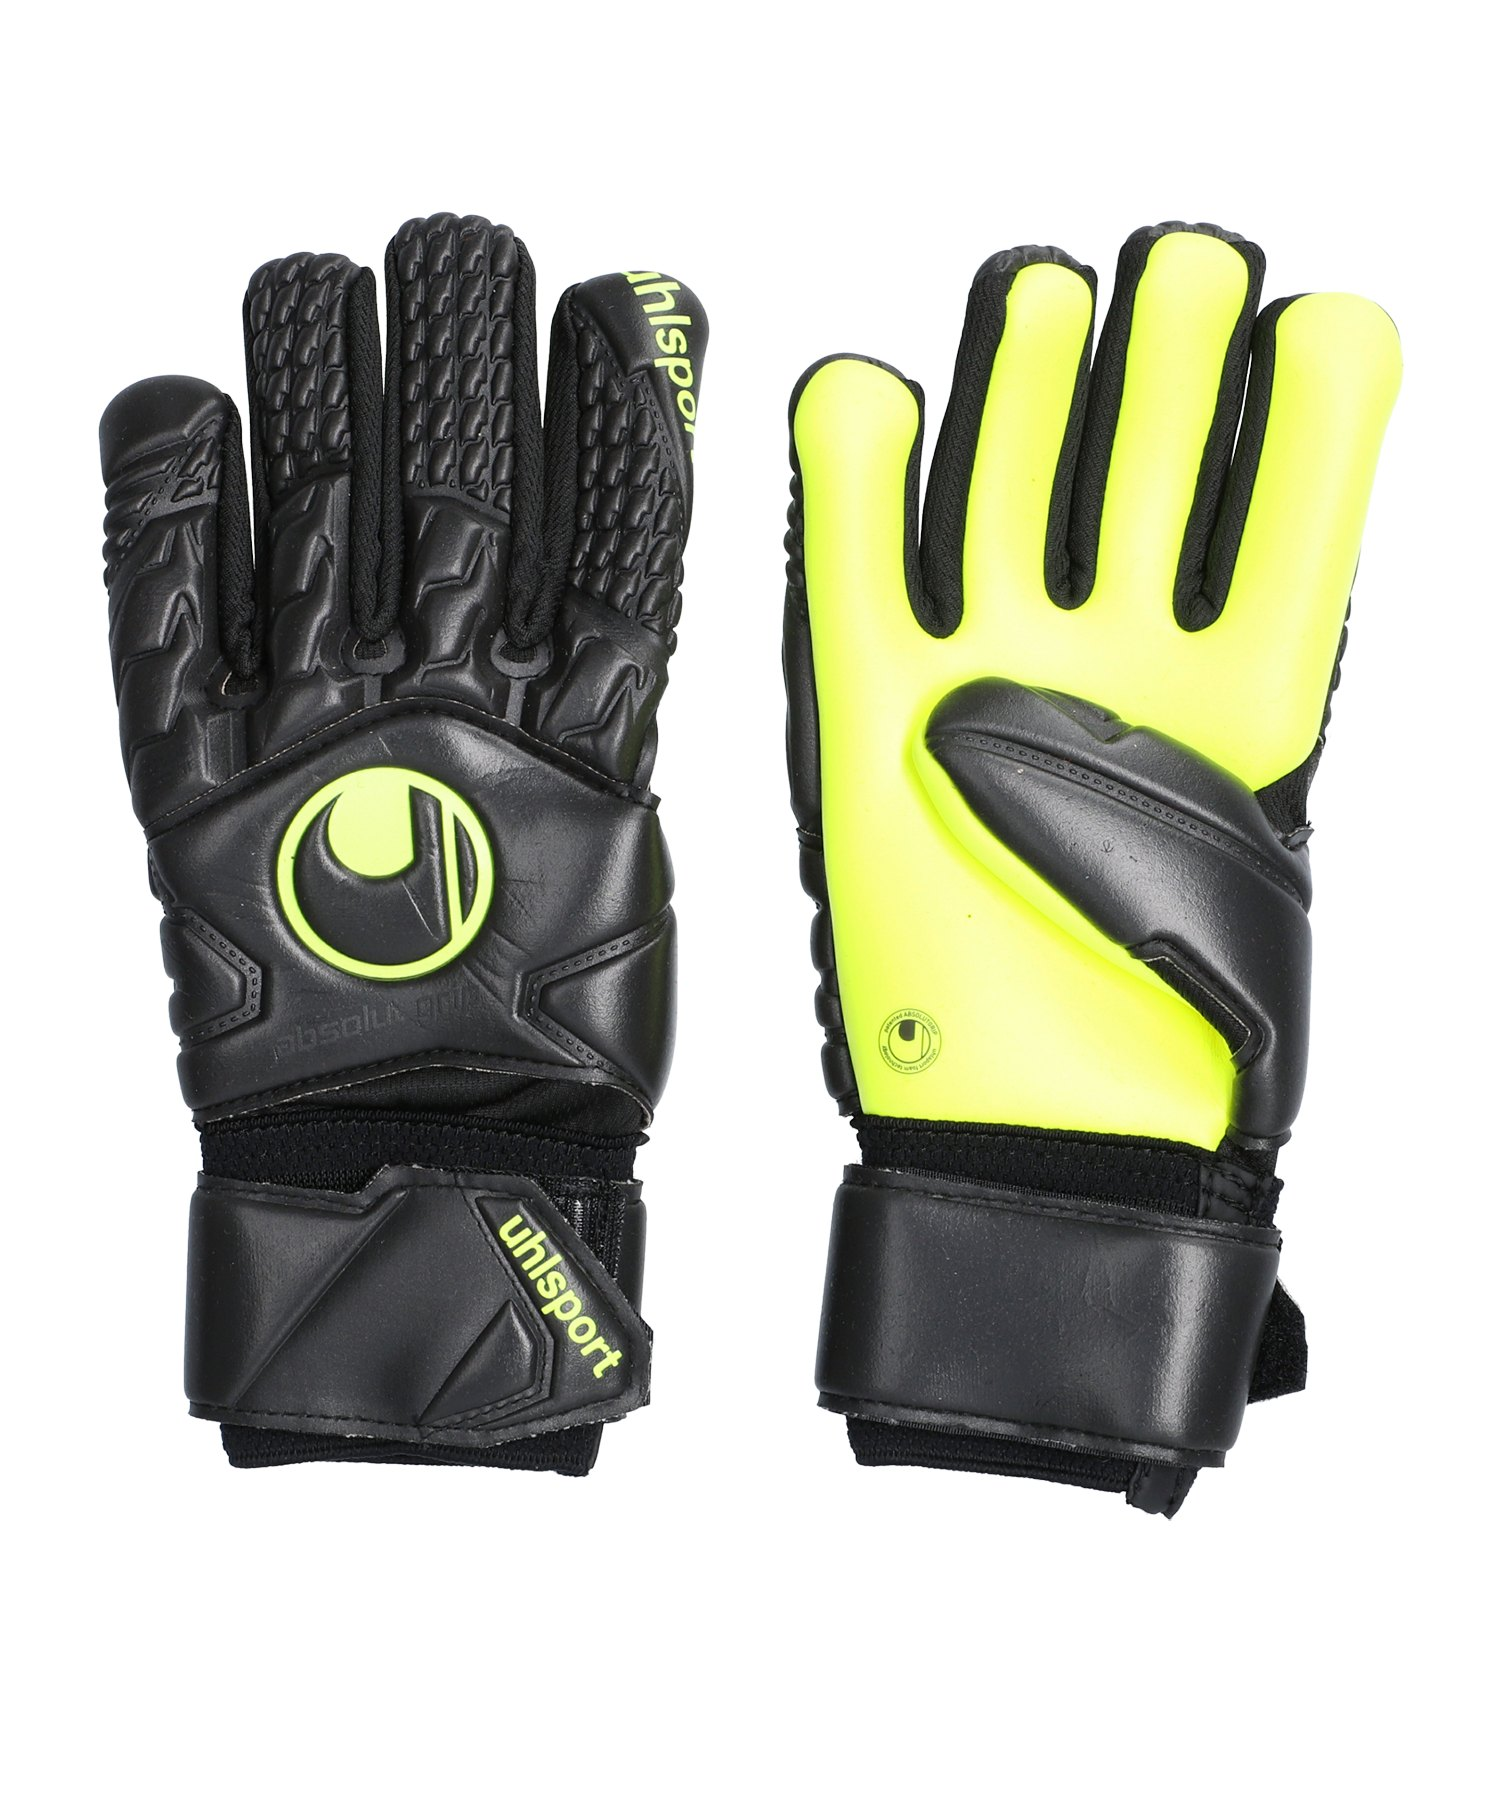 Uhlsport Absolutgrip HN TW-Handschuh F03 - schwarz